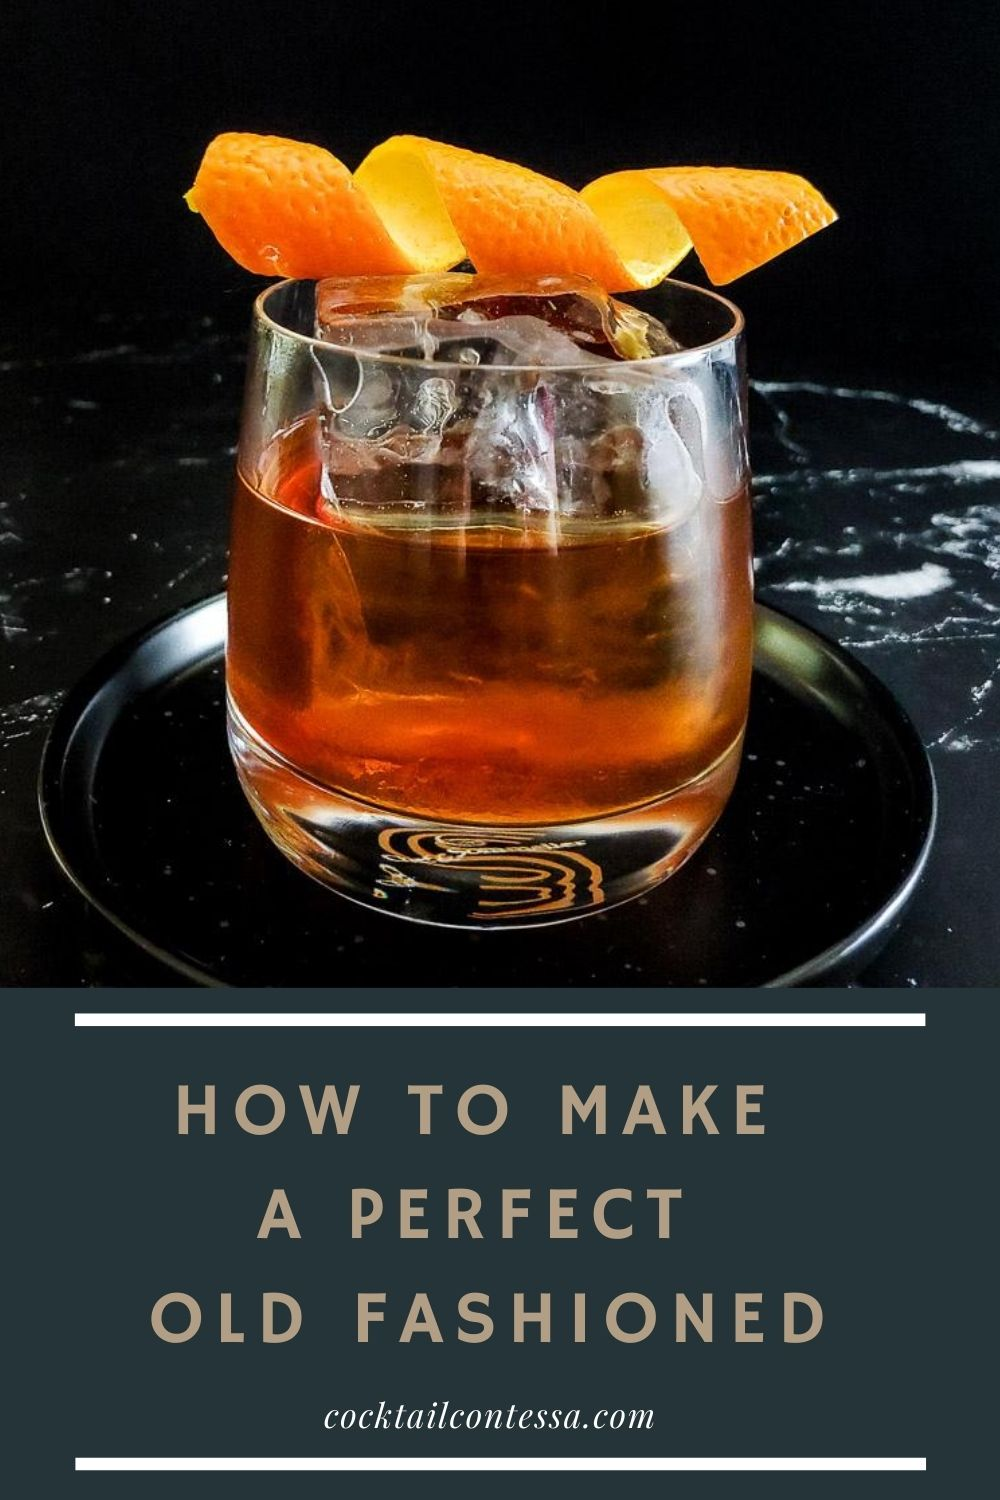 old fashioned cocktail with orange twist and How to Make A Perfect Old Fashioned title